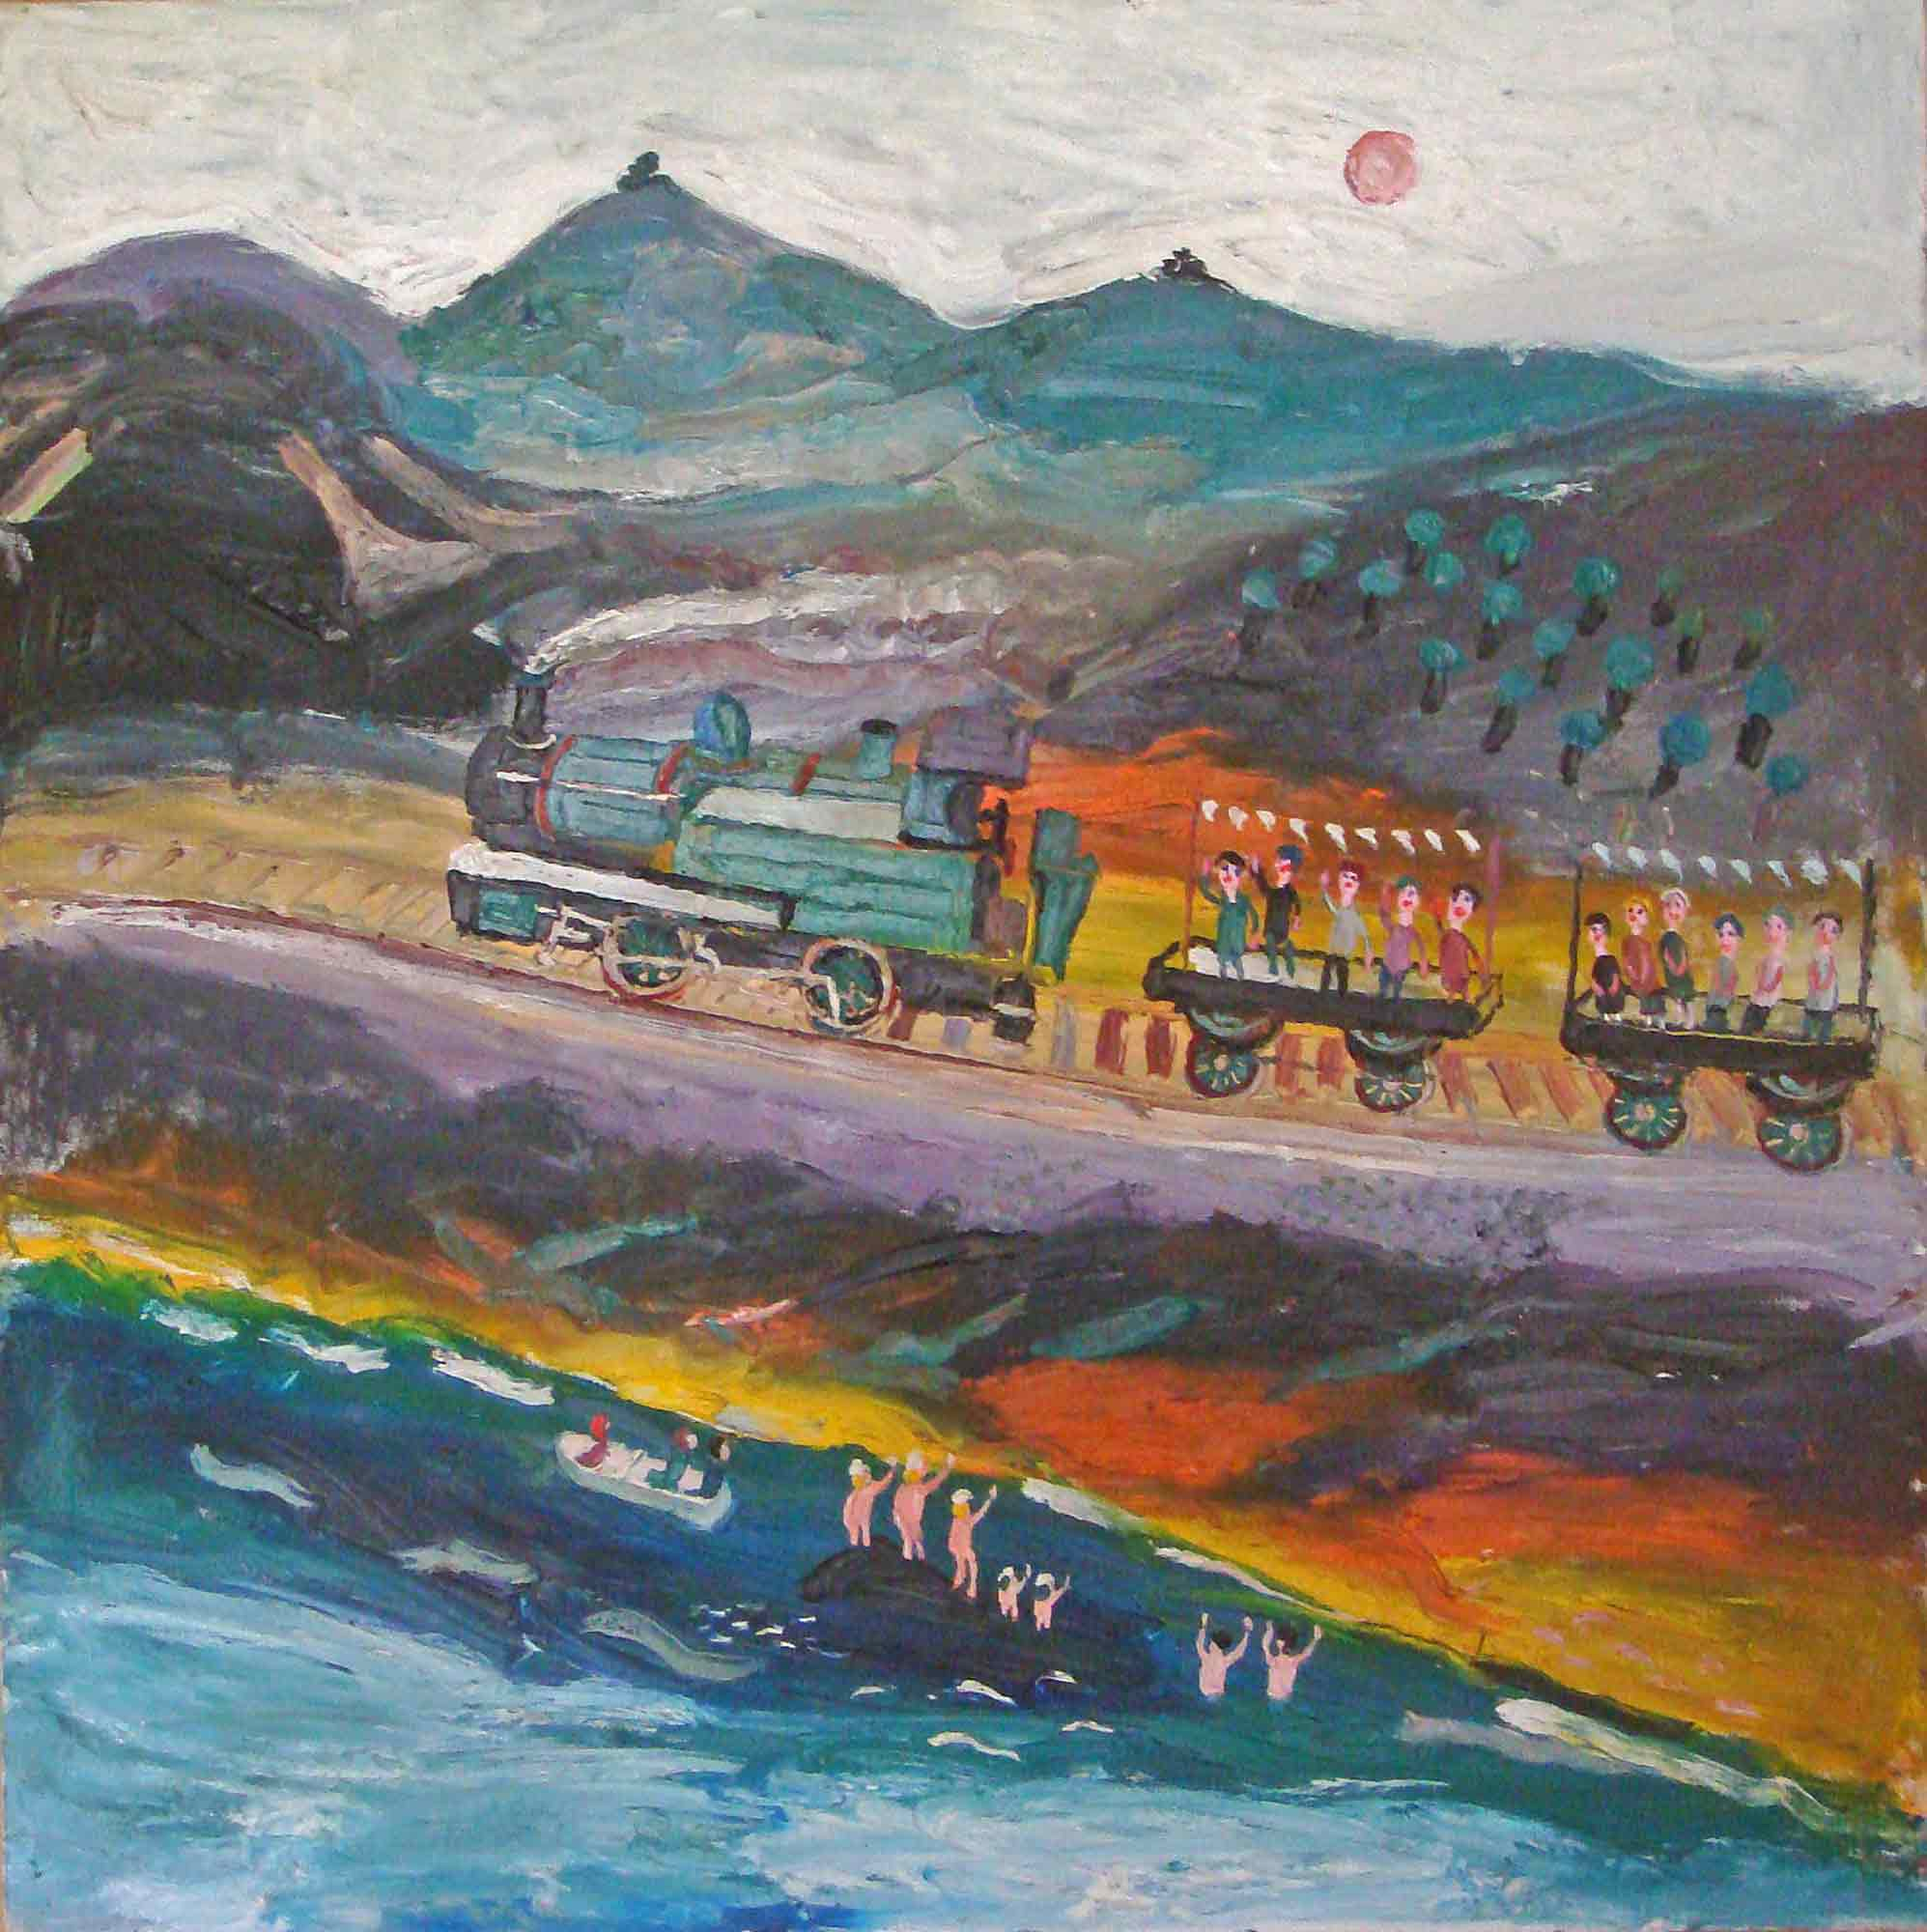 Fred Yates Acrylic Painting 'Train Journey'